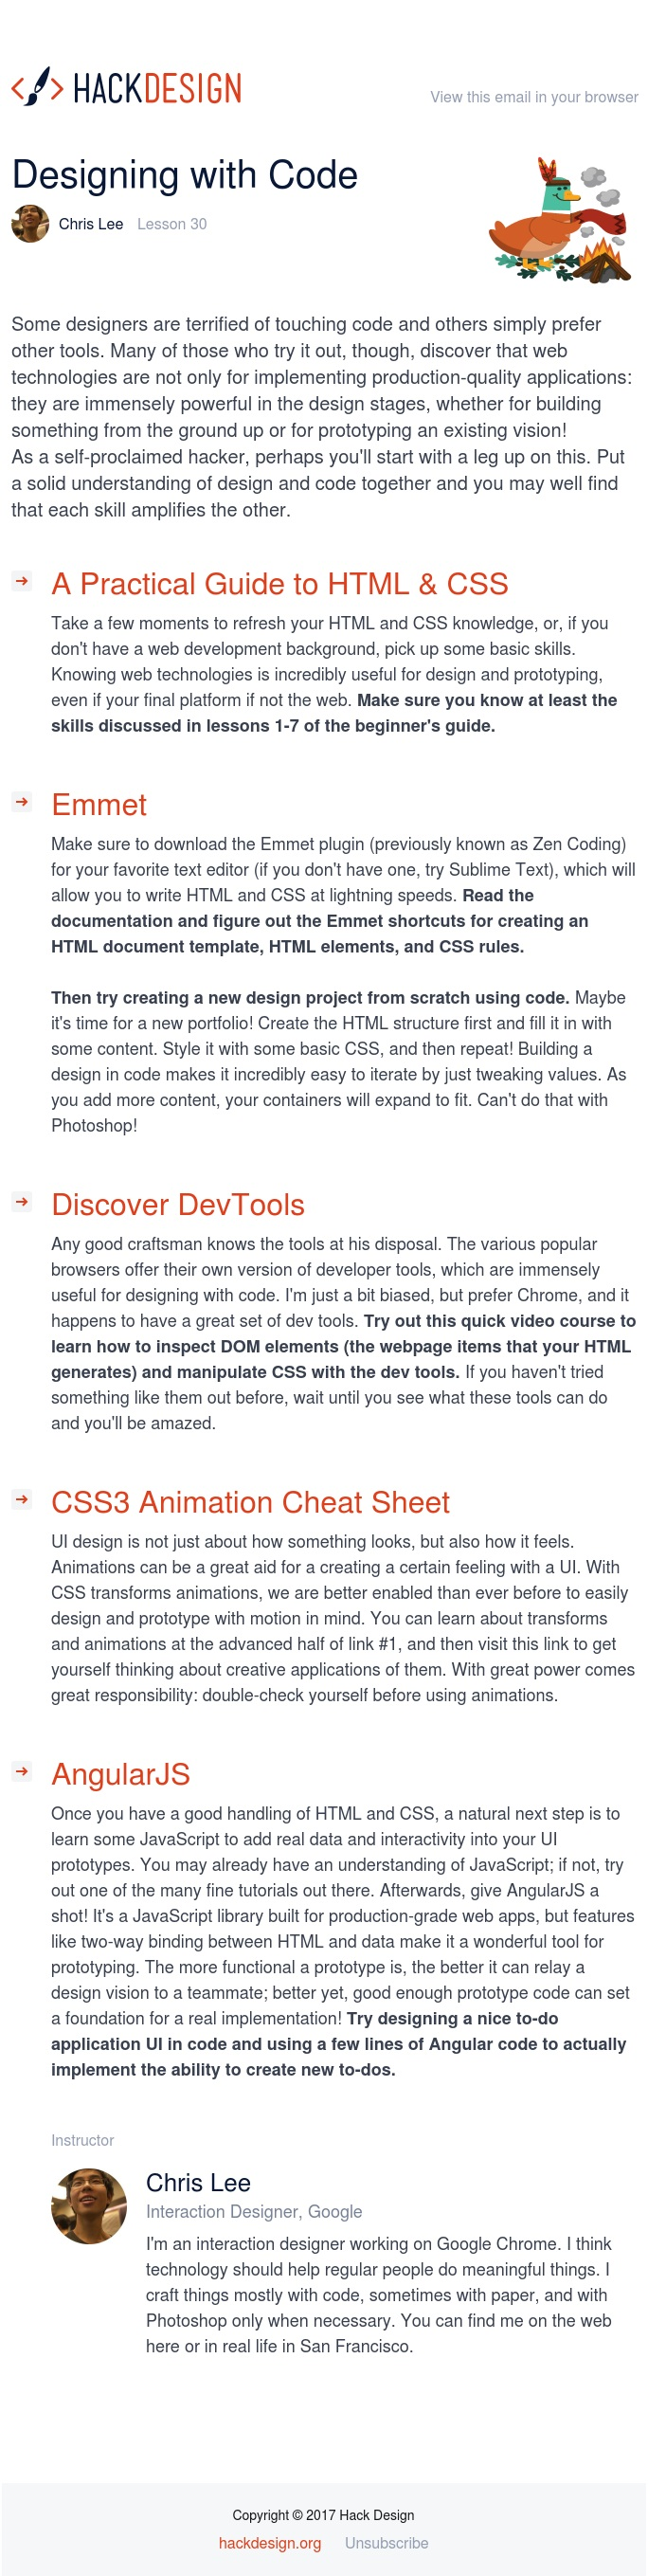 Lesson 30 - Designing with Code